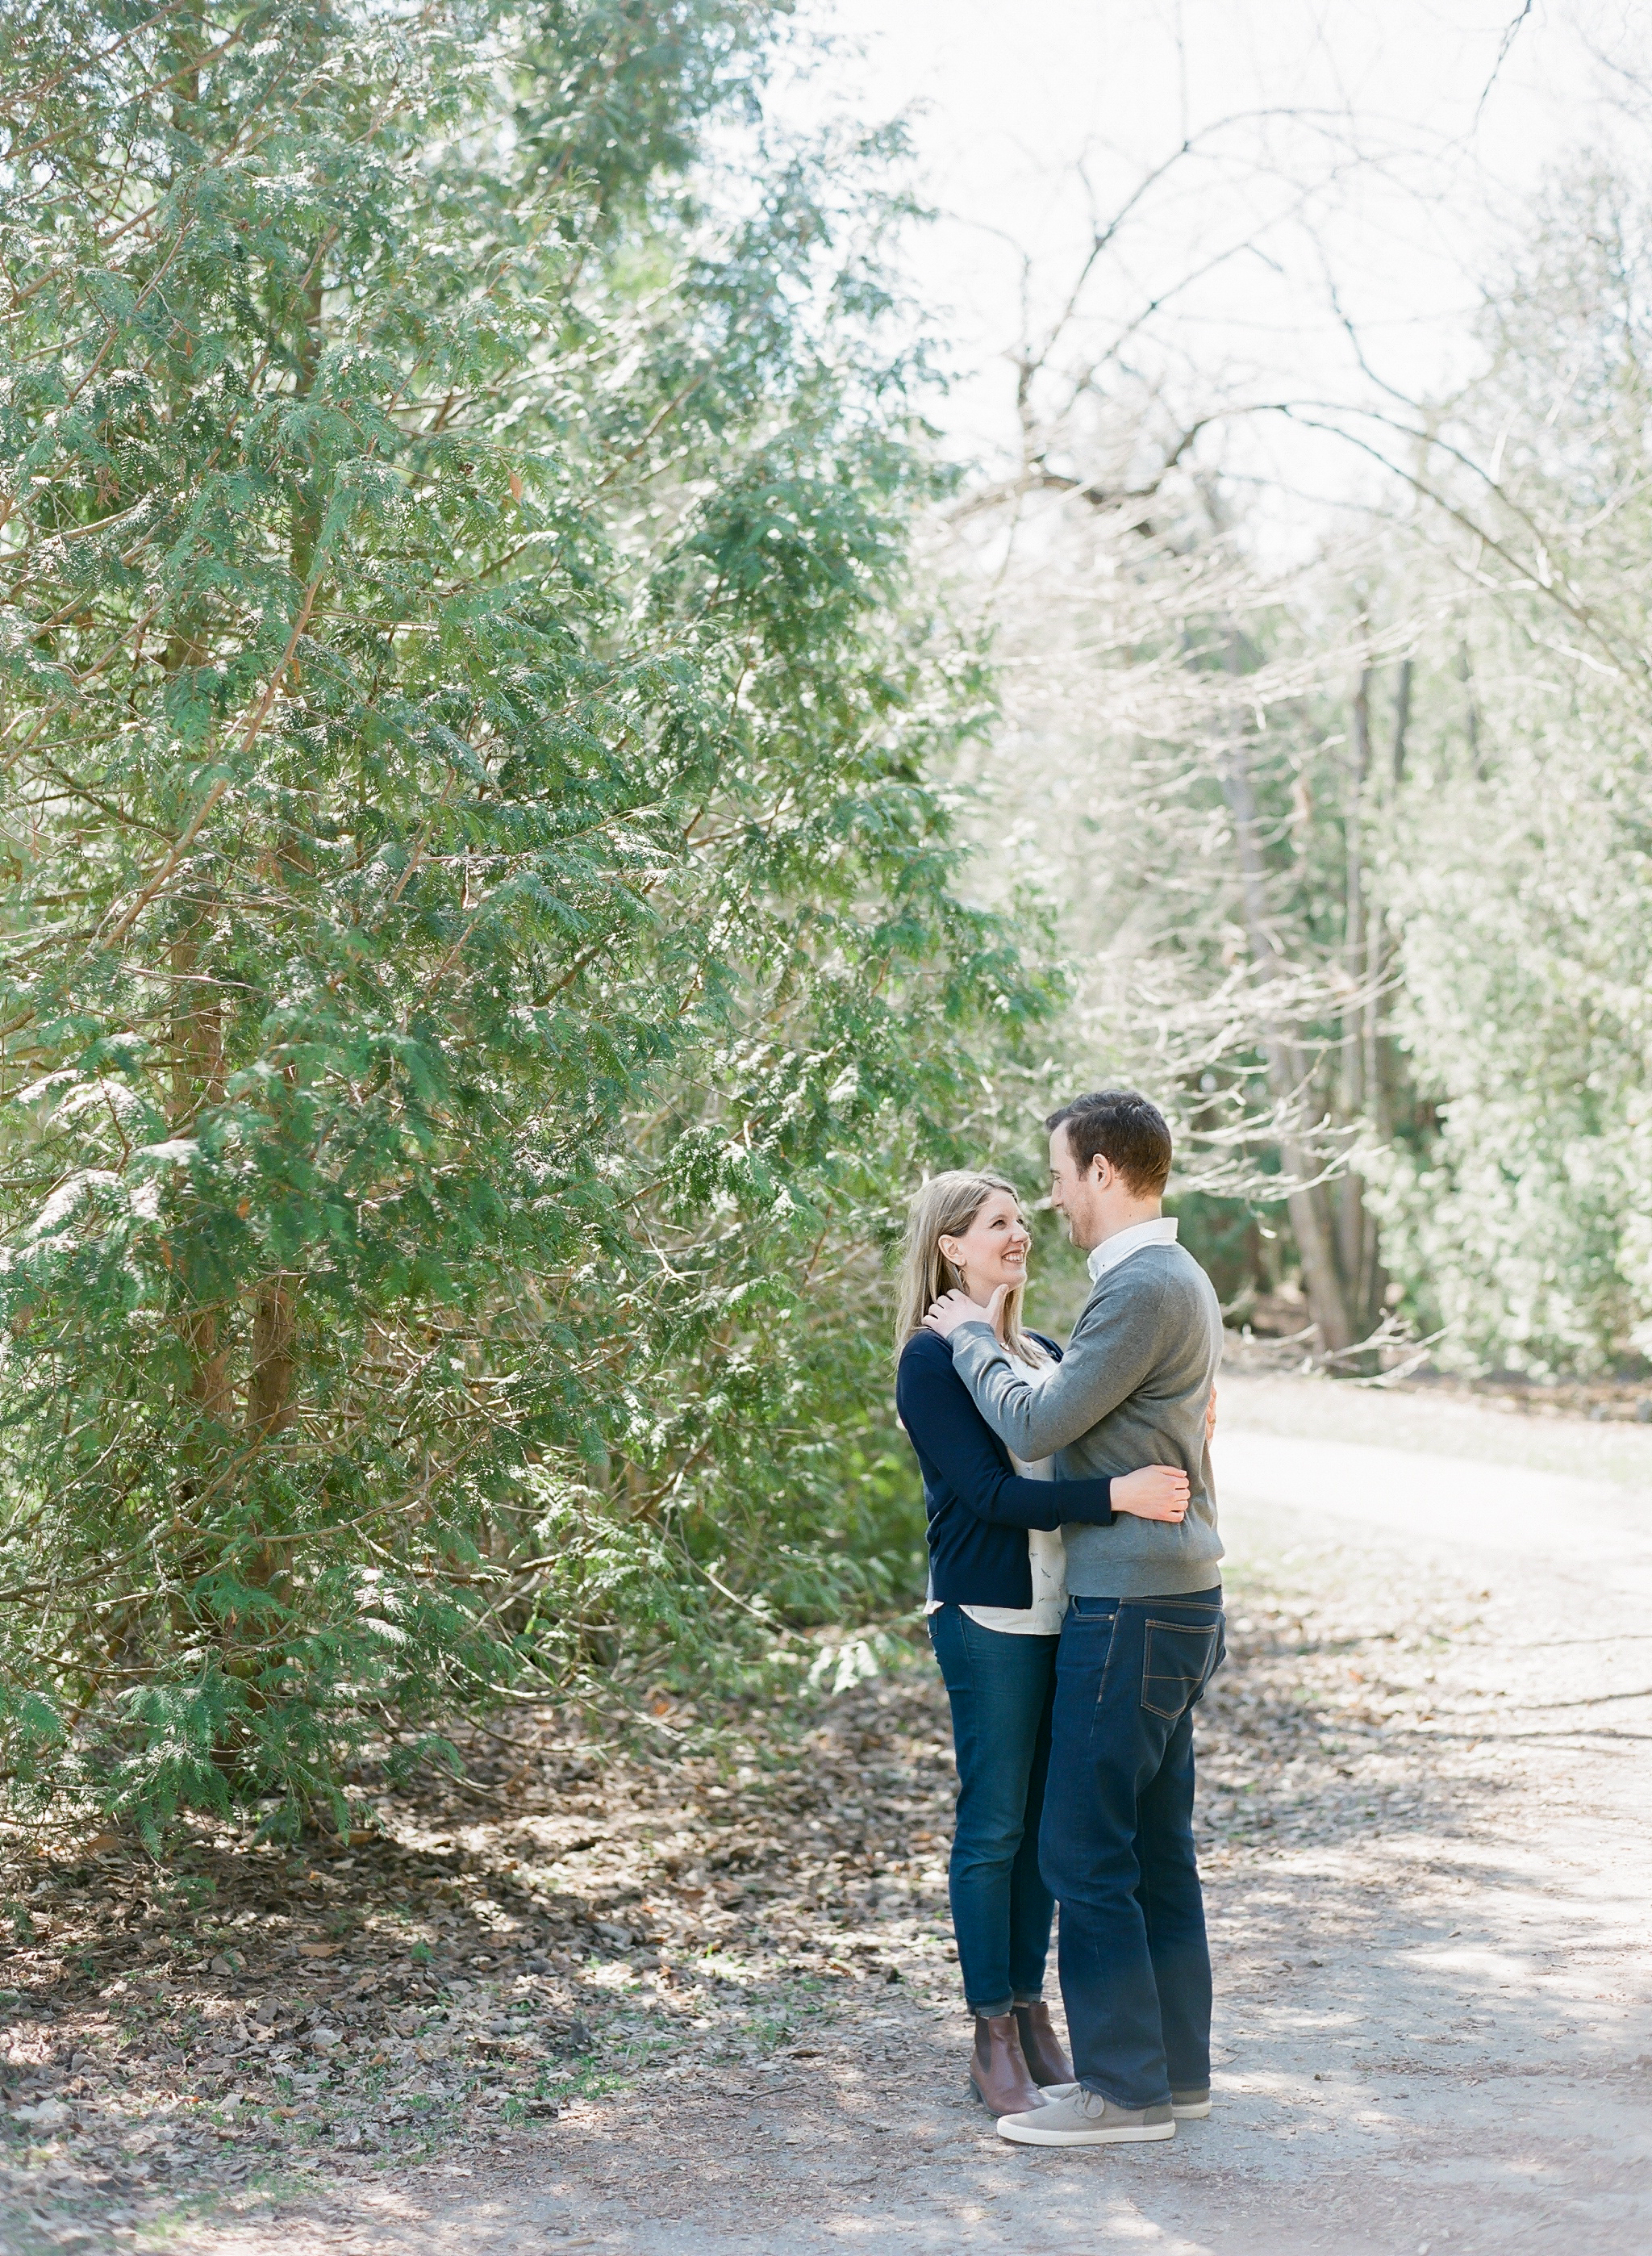 An Elora Engagement Session at Elora Mill